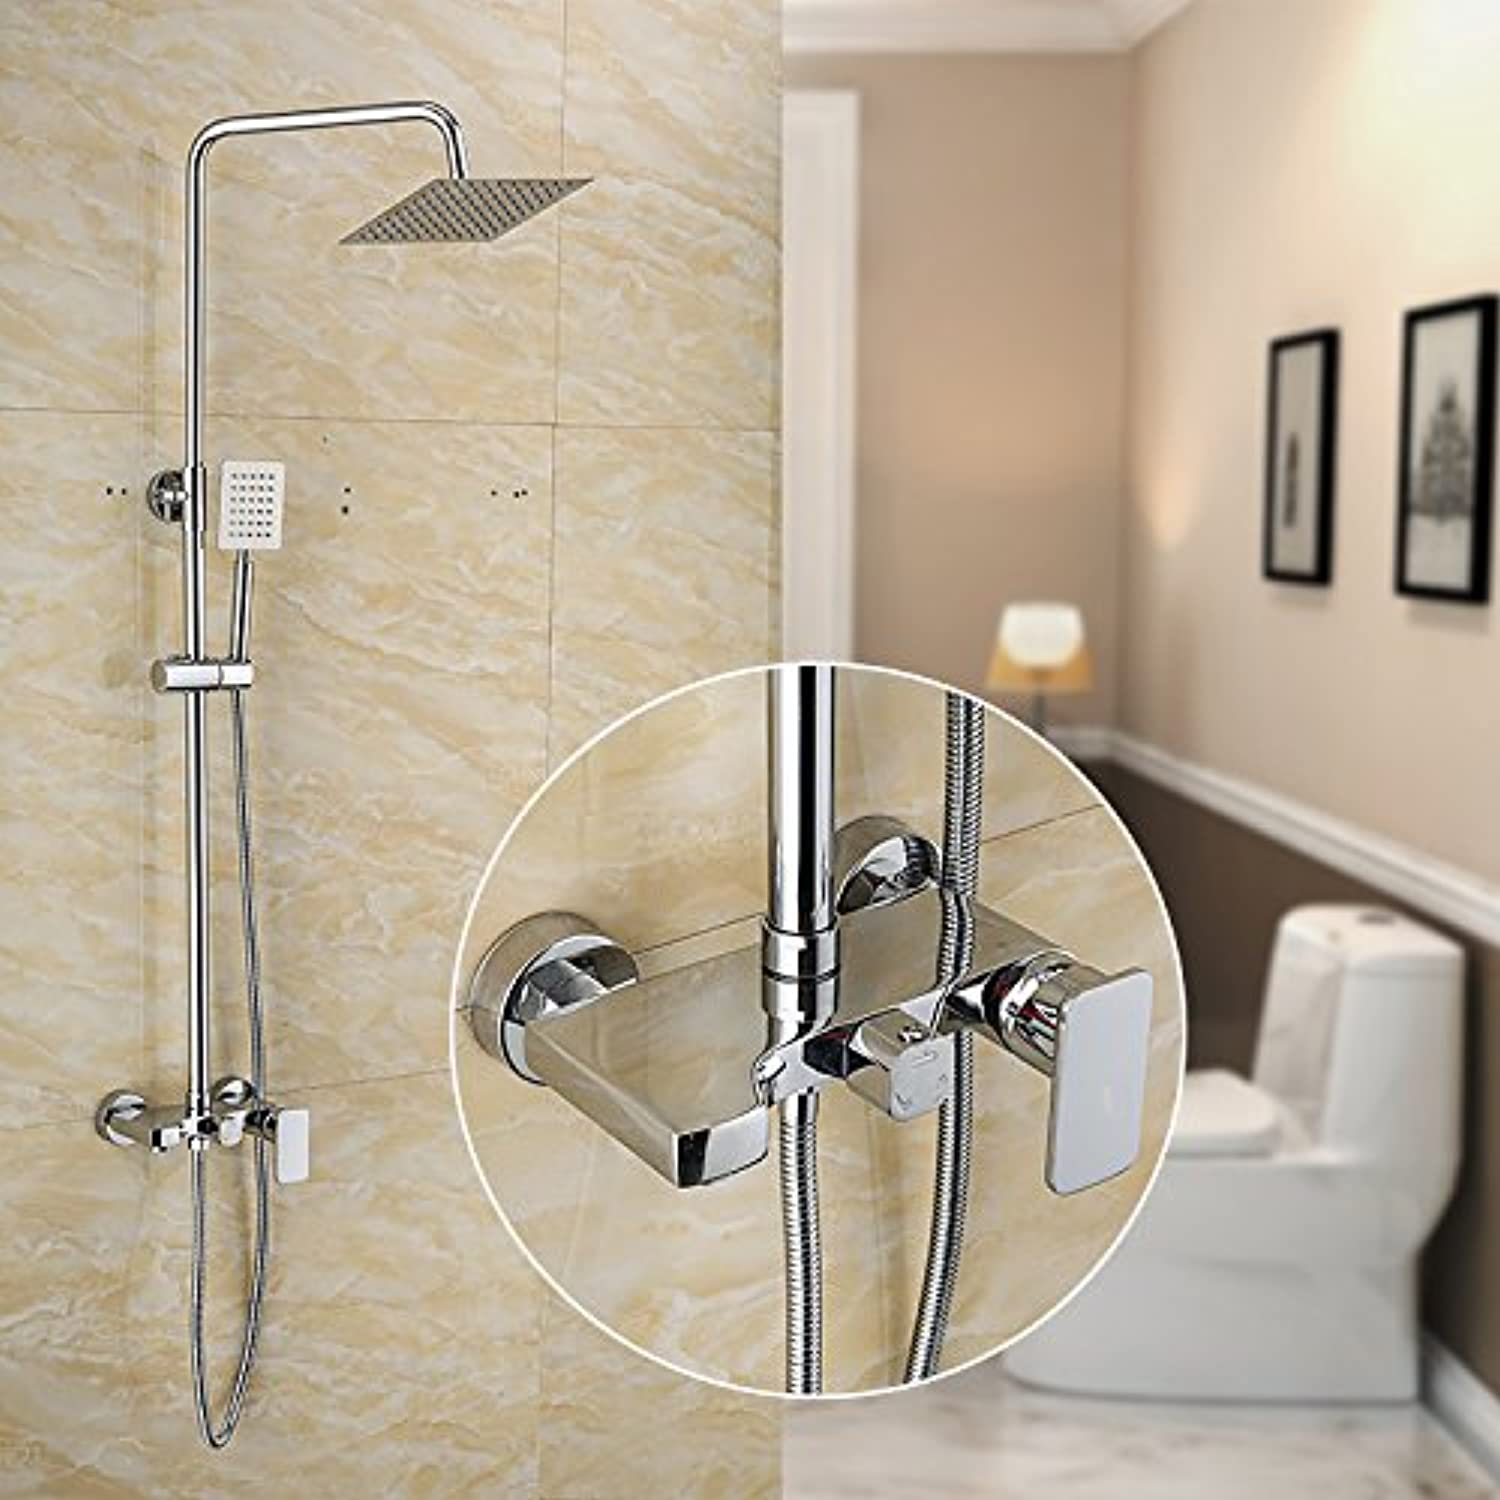 GM Copper plating shower shower faucet set small plane three shower shower lifting rod